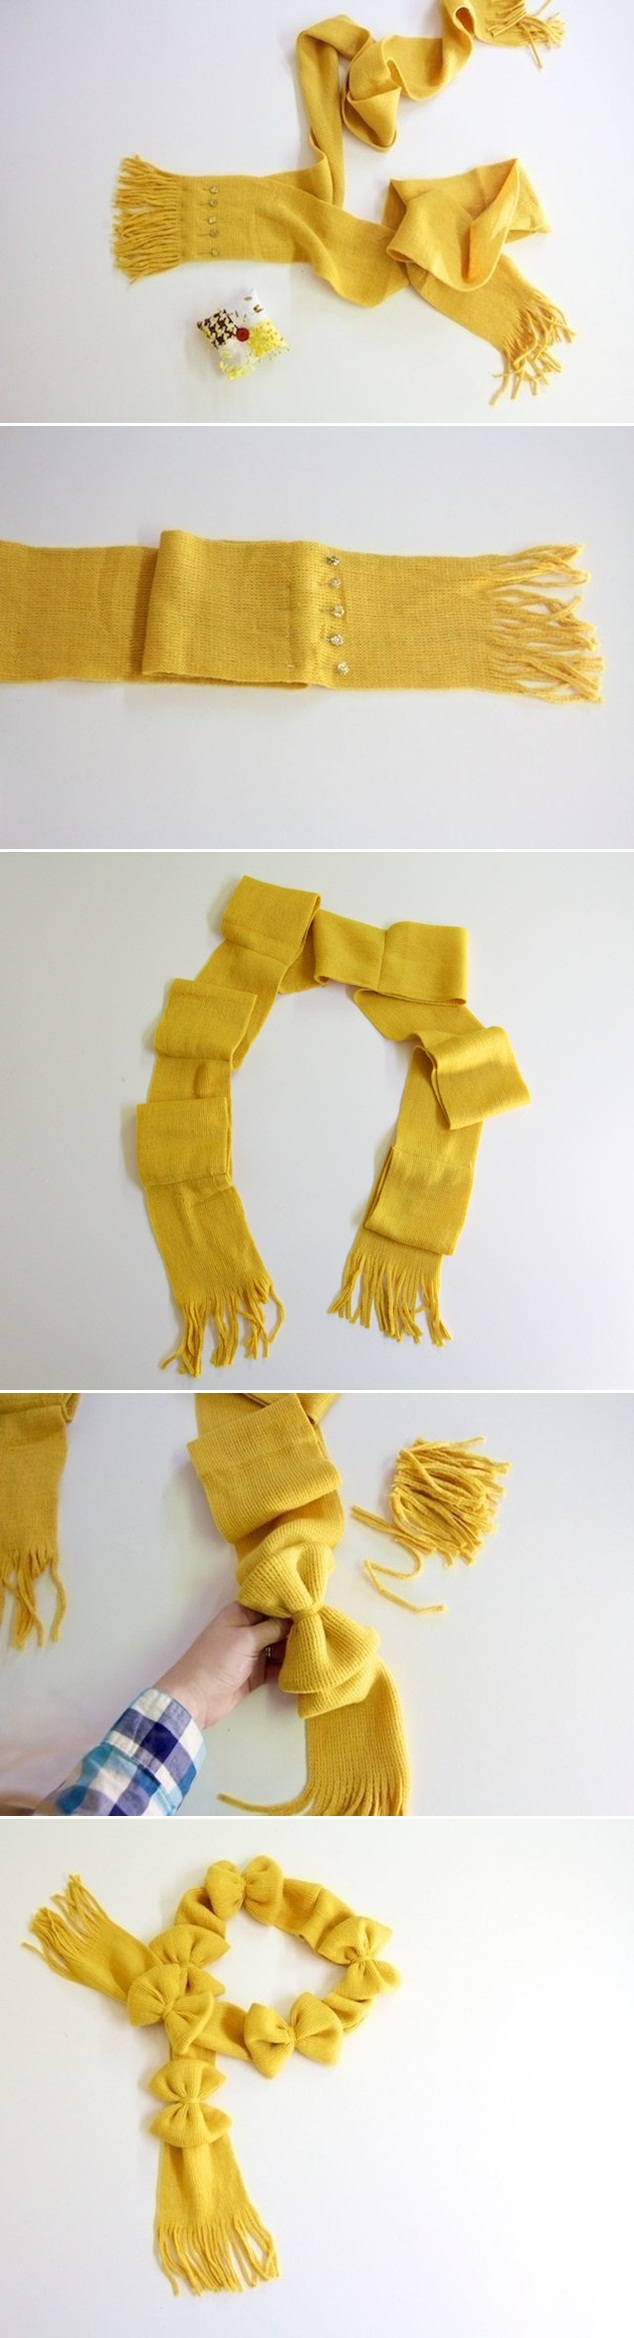 diy scarves easy ideas two scarves ribbons sewing